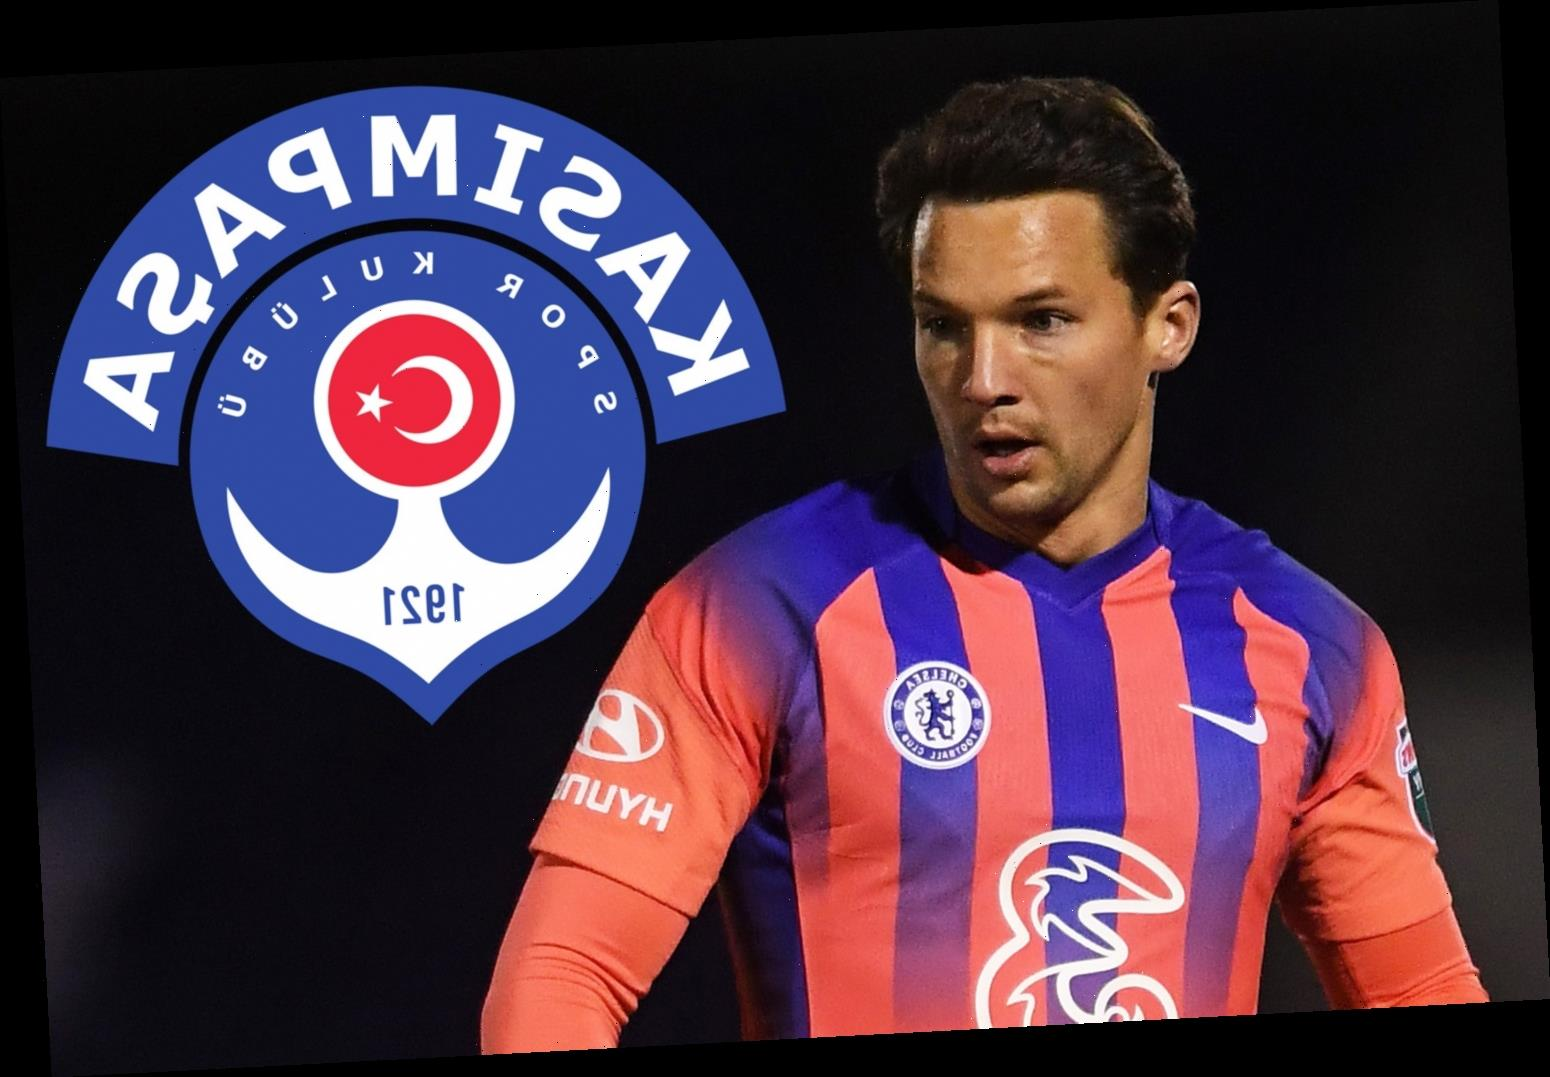 Chelsea's flop £35m transfer Danny Drinkwater set to join Turkish side Kasimpasa on loan until end of season